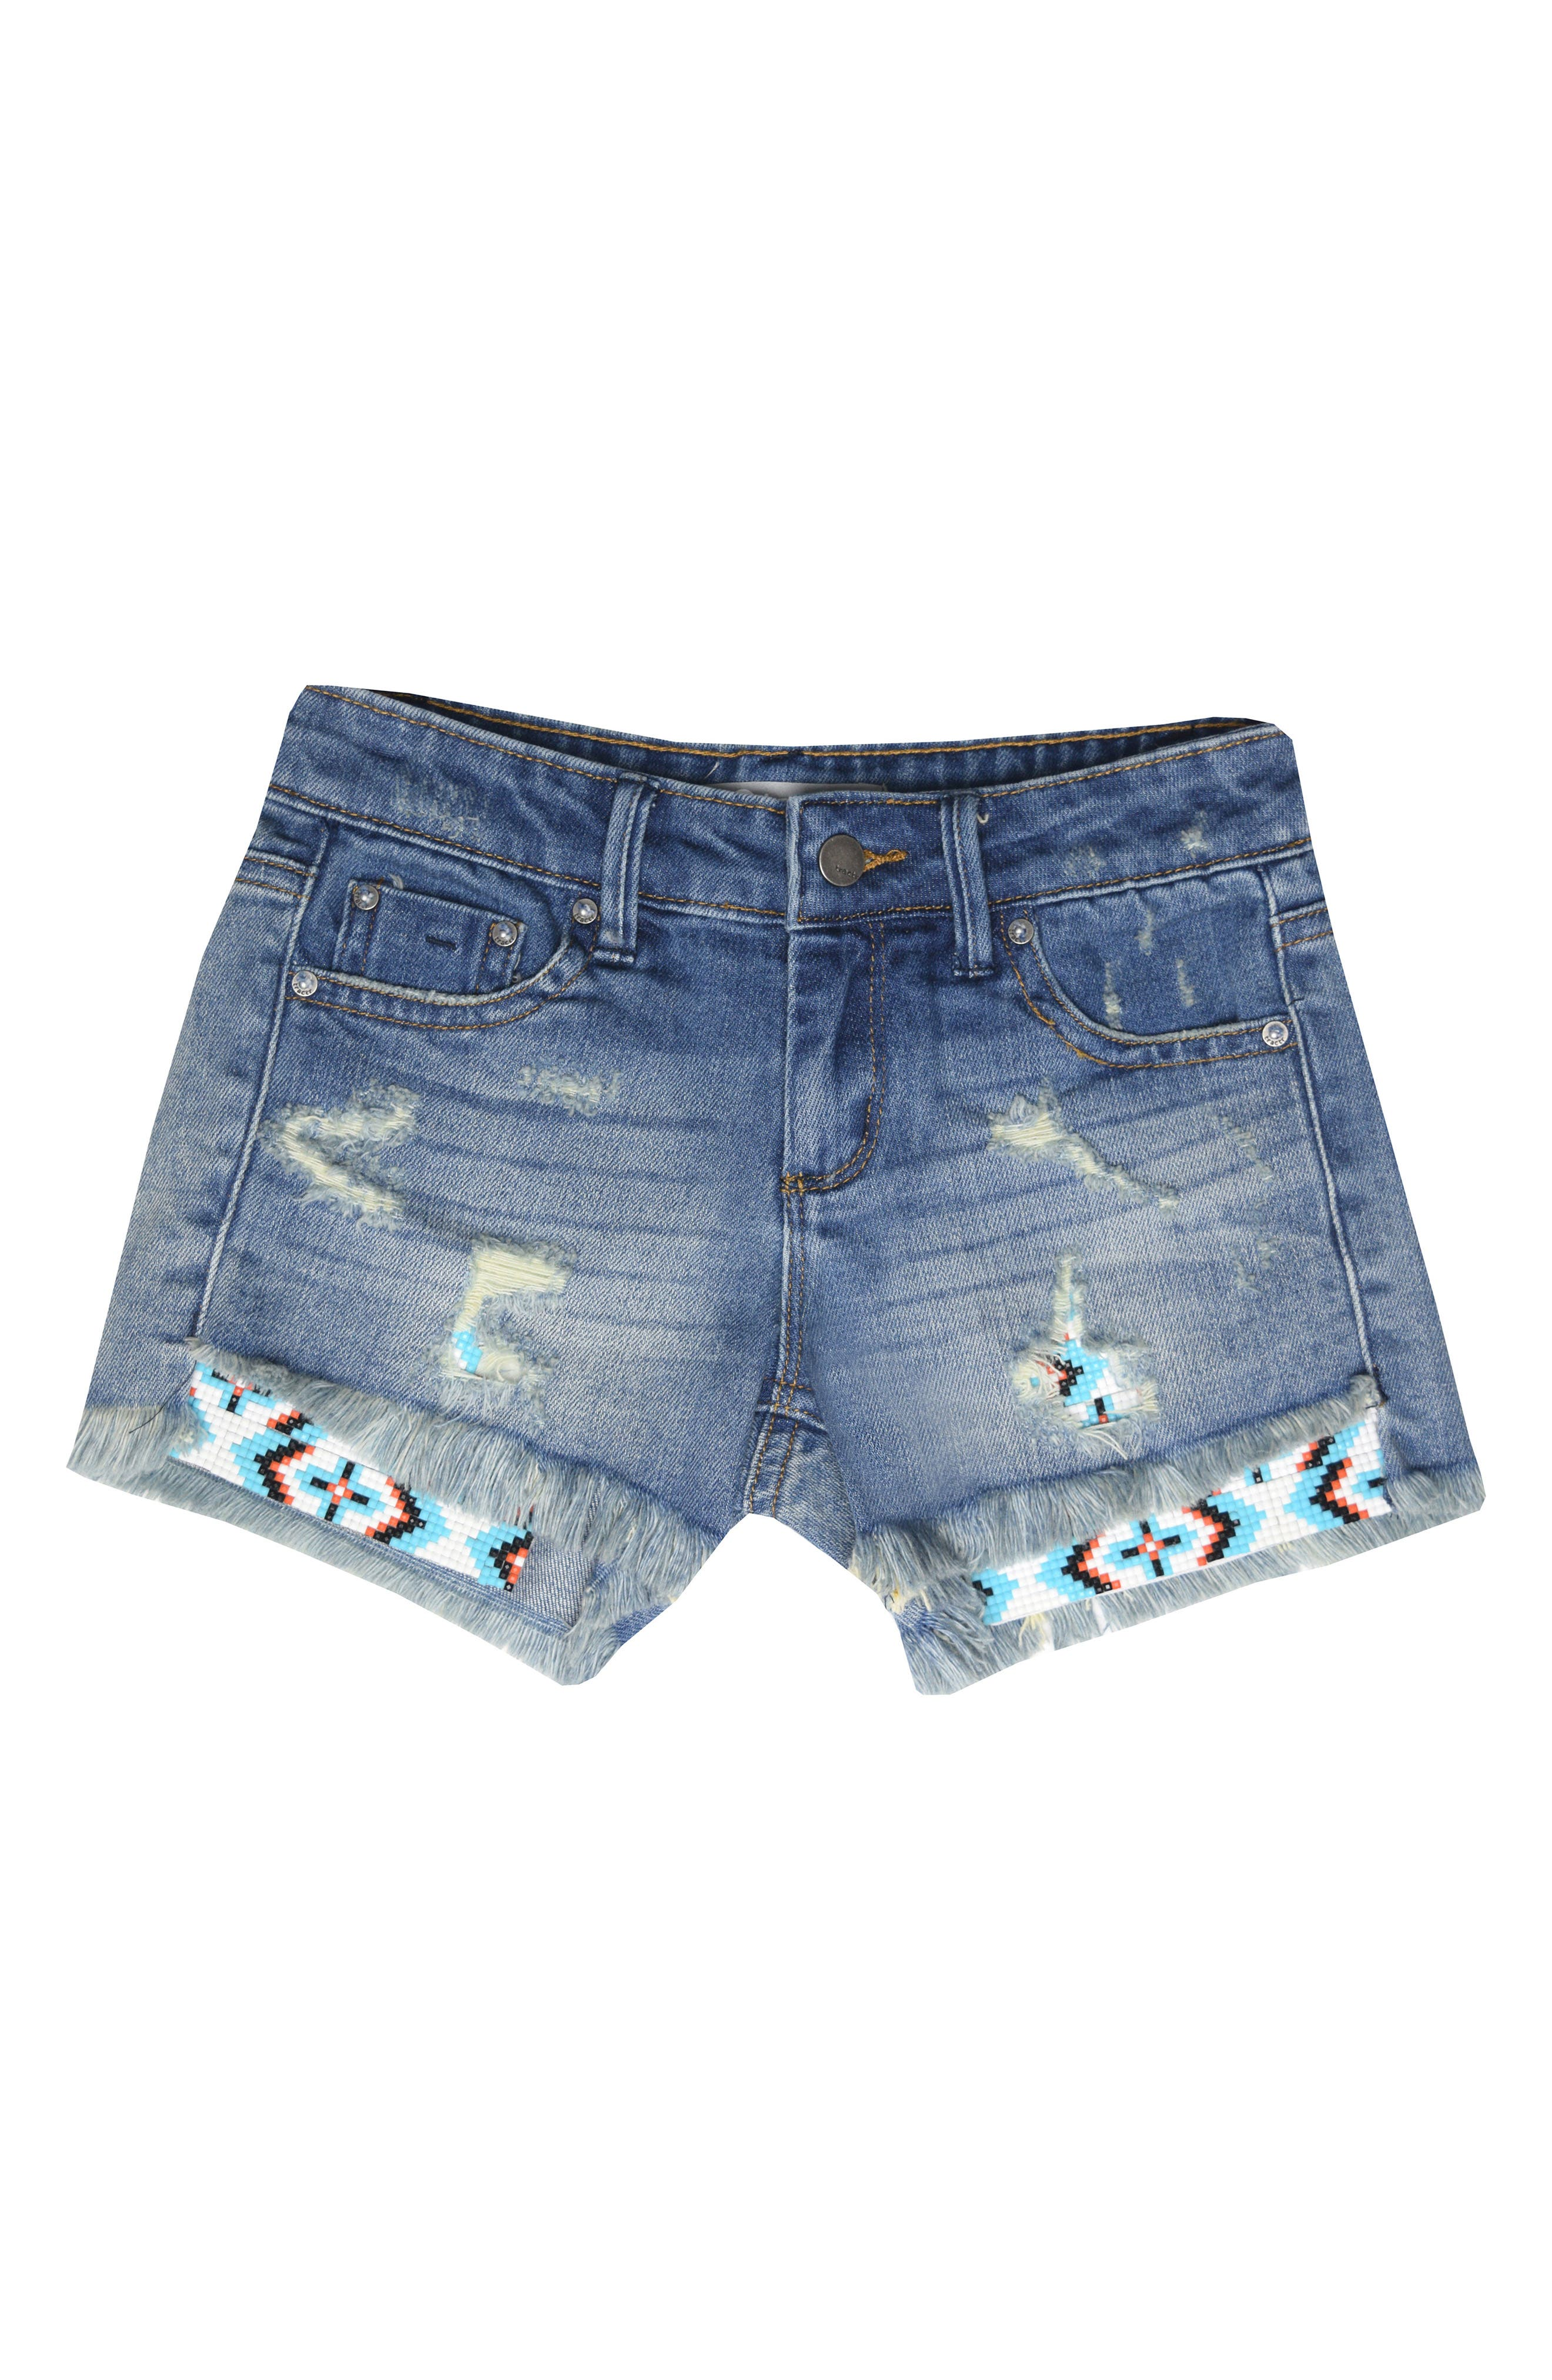 Beaded Distressed Denim Shorts,                             Main thumbnail 1, color,                             Indigo